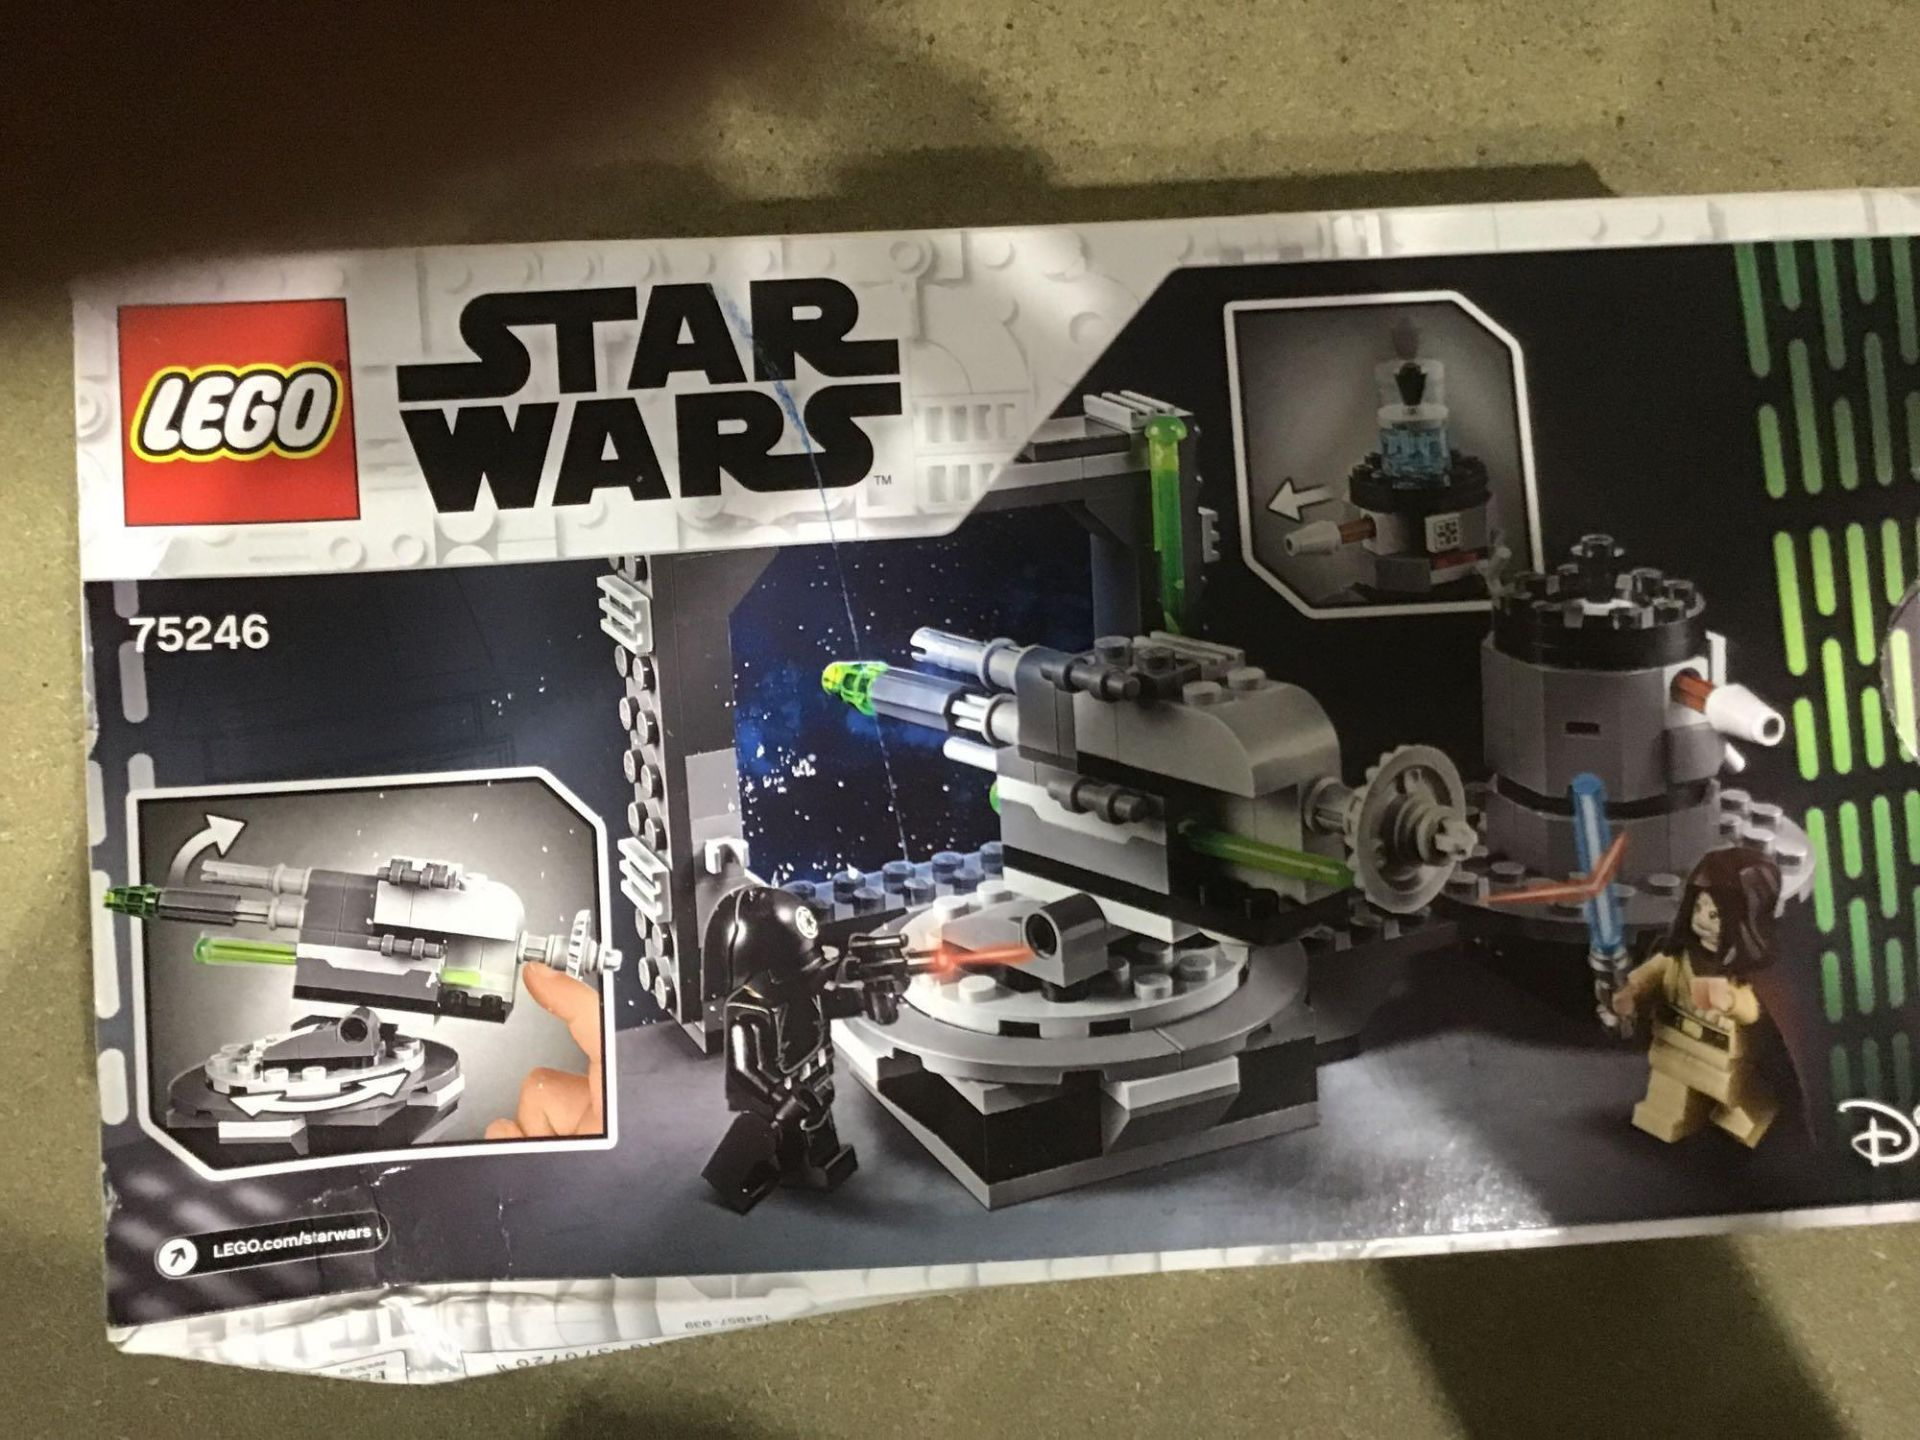 LEGO Star Wars Death Cannon Building Set - 75246 (5702016370720) - £9.00 RRP - Image 3 of 4